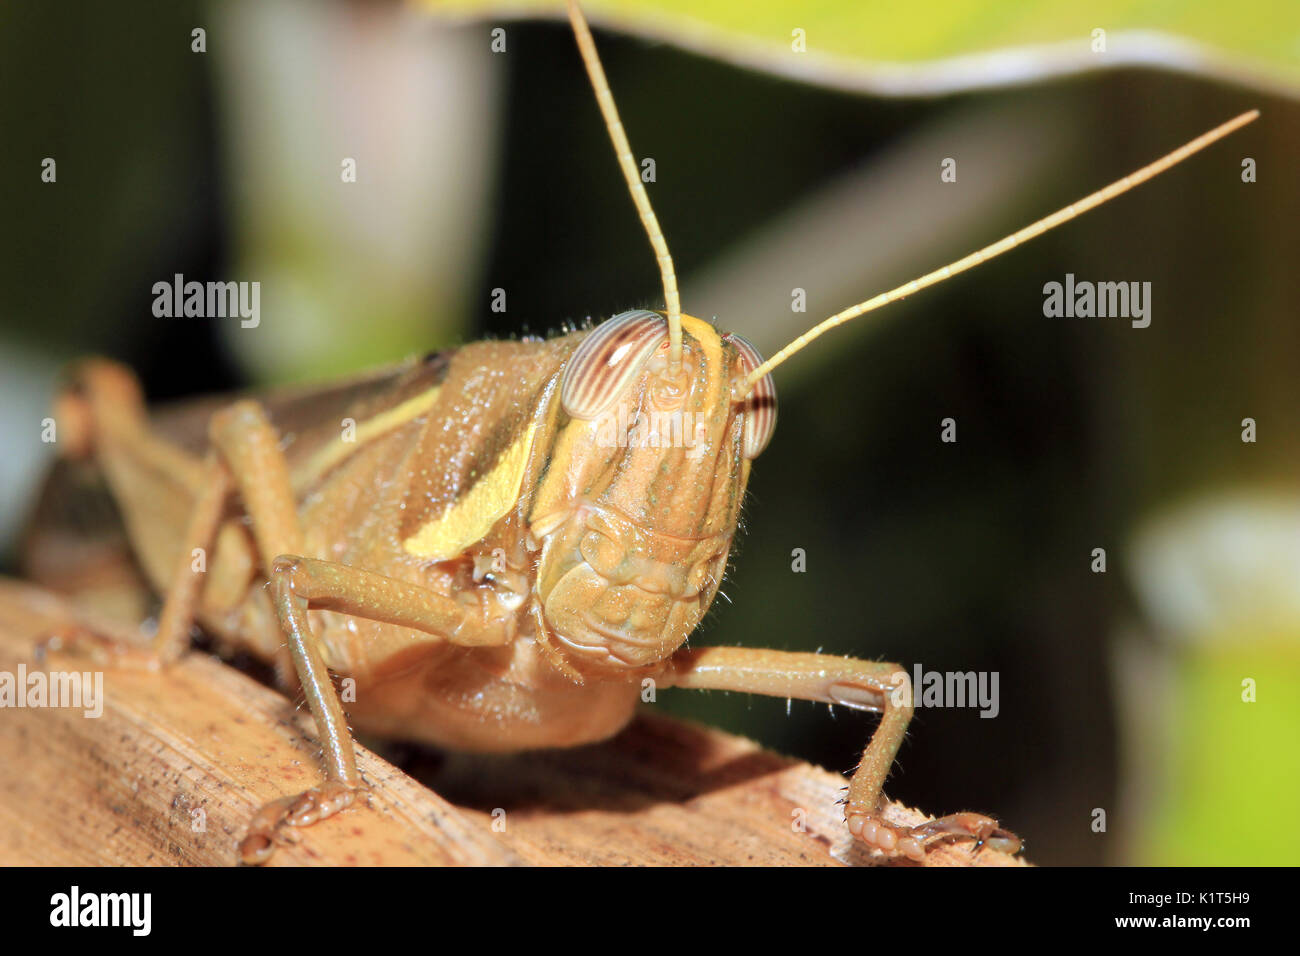 Close-up of a Cricket on a Leaf. Amazon Rainforest, Brazil. - Stock Image